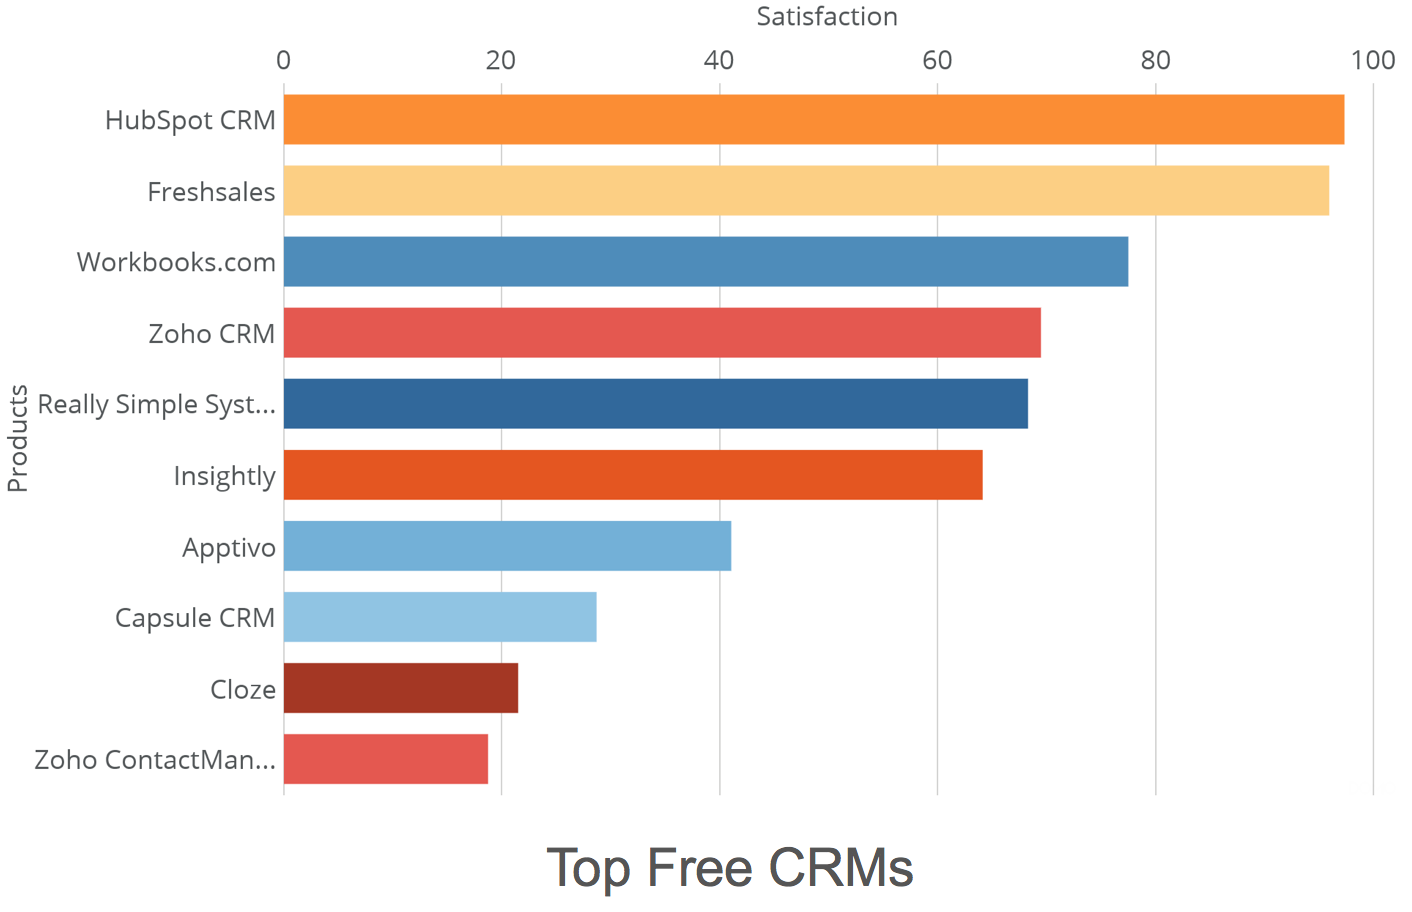 HubSpot CRM ranked number one free CRM